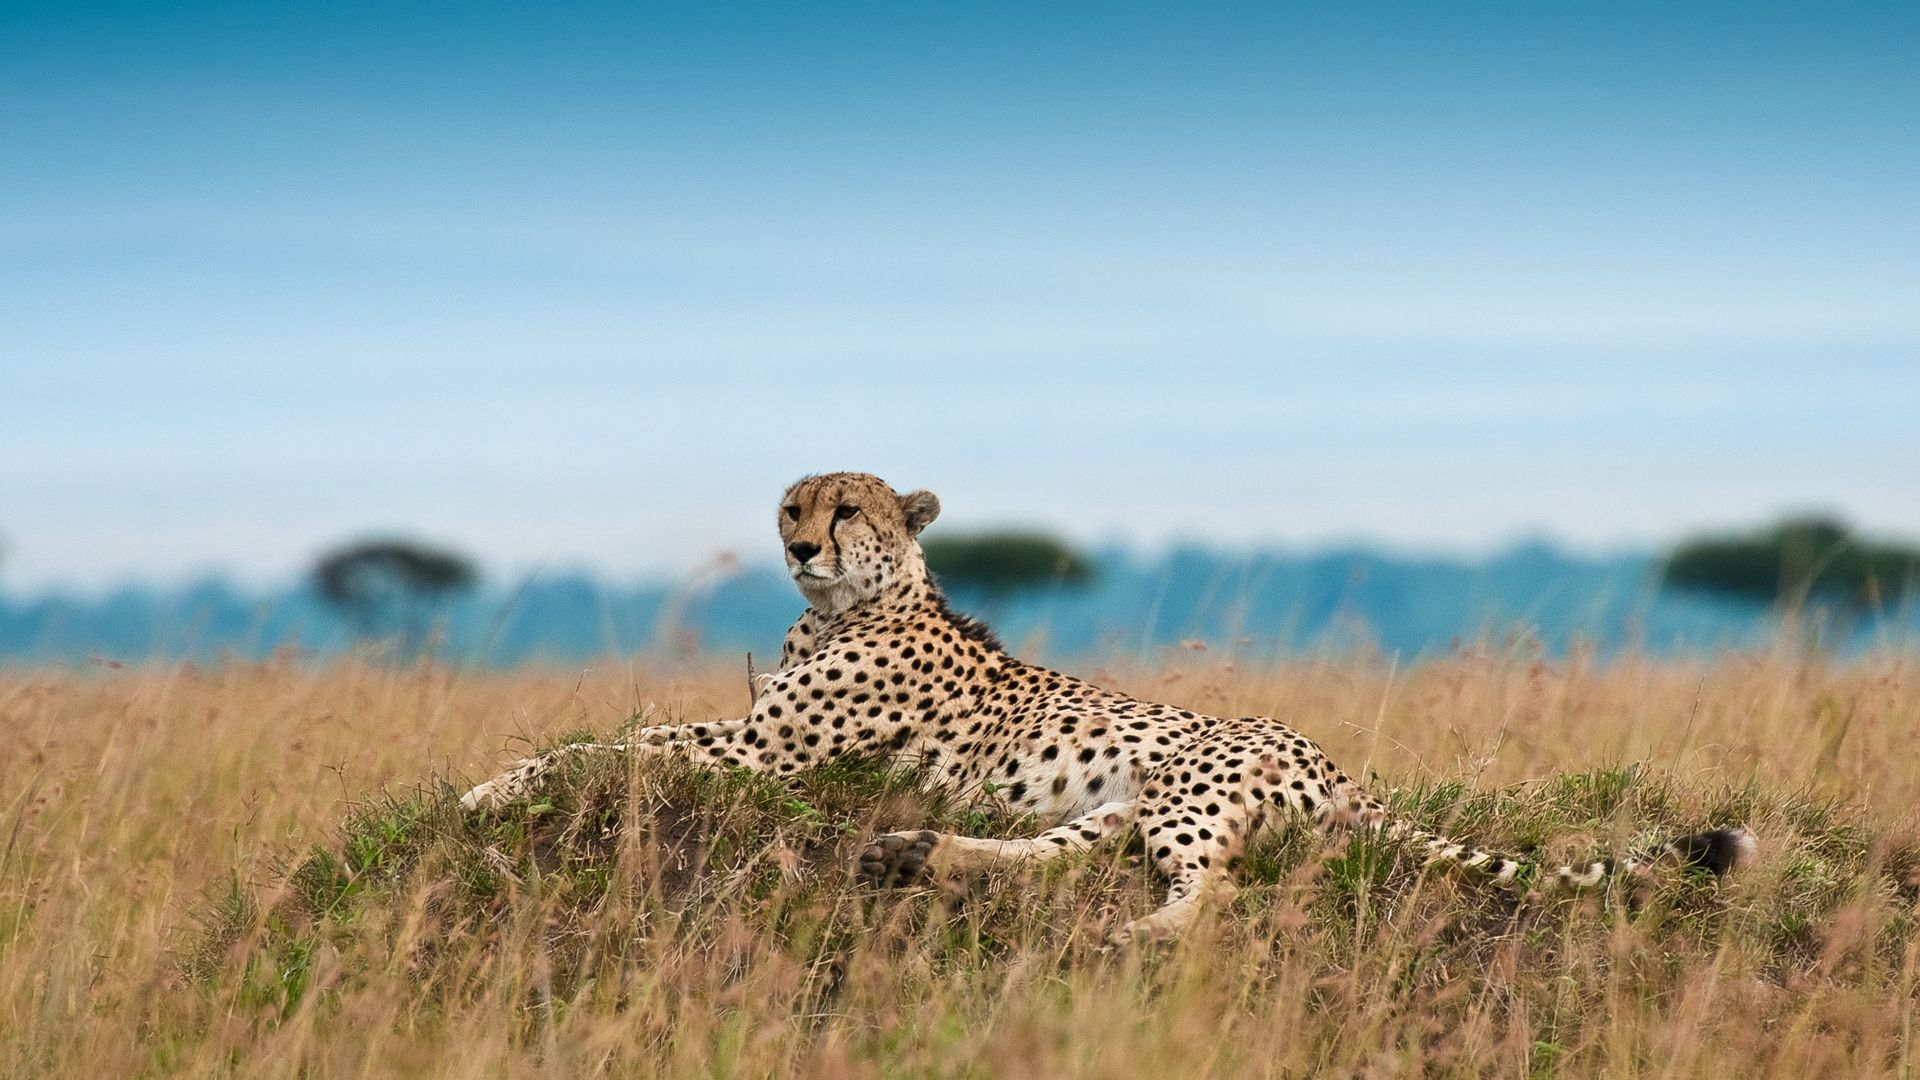 The Wallpapers Of Cheetah